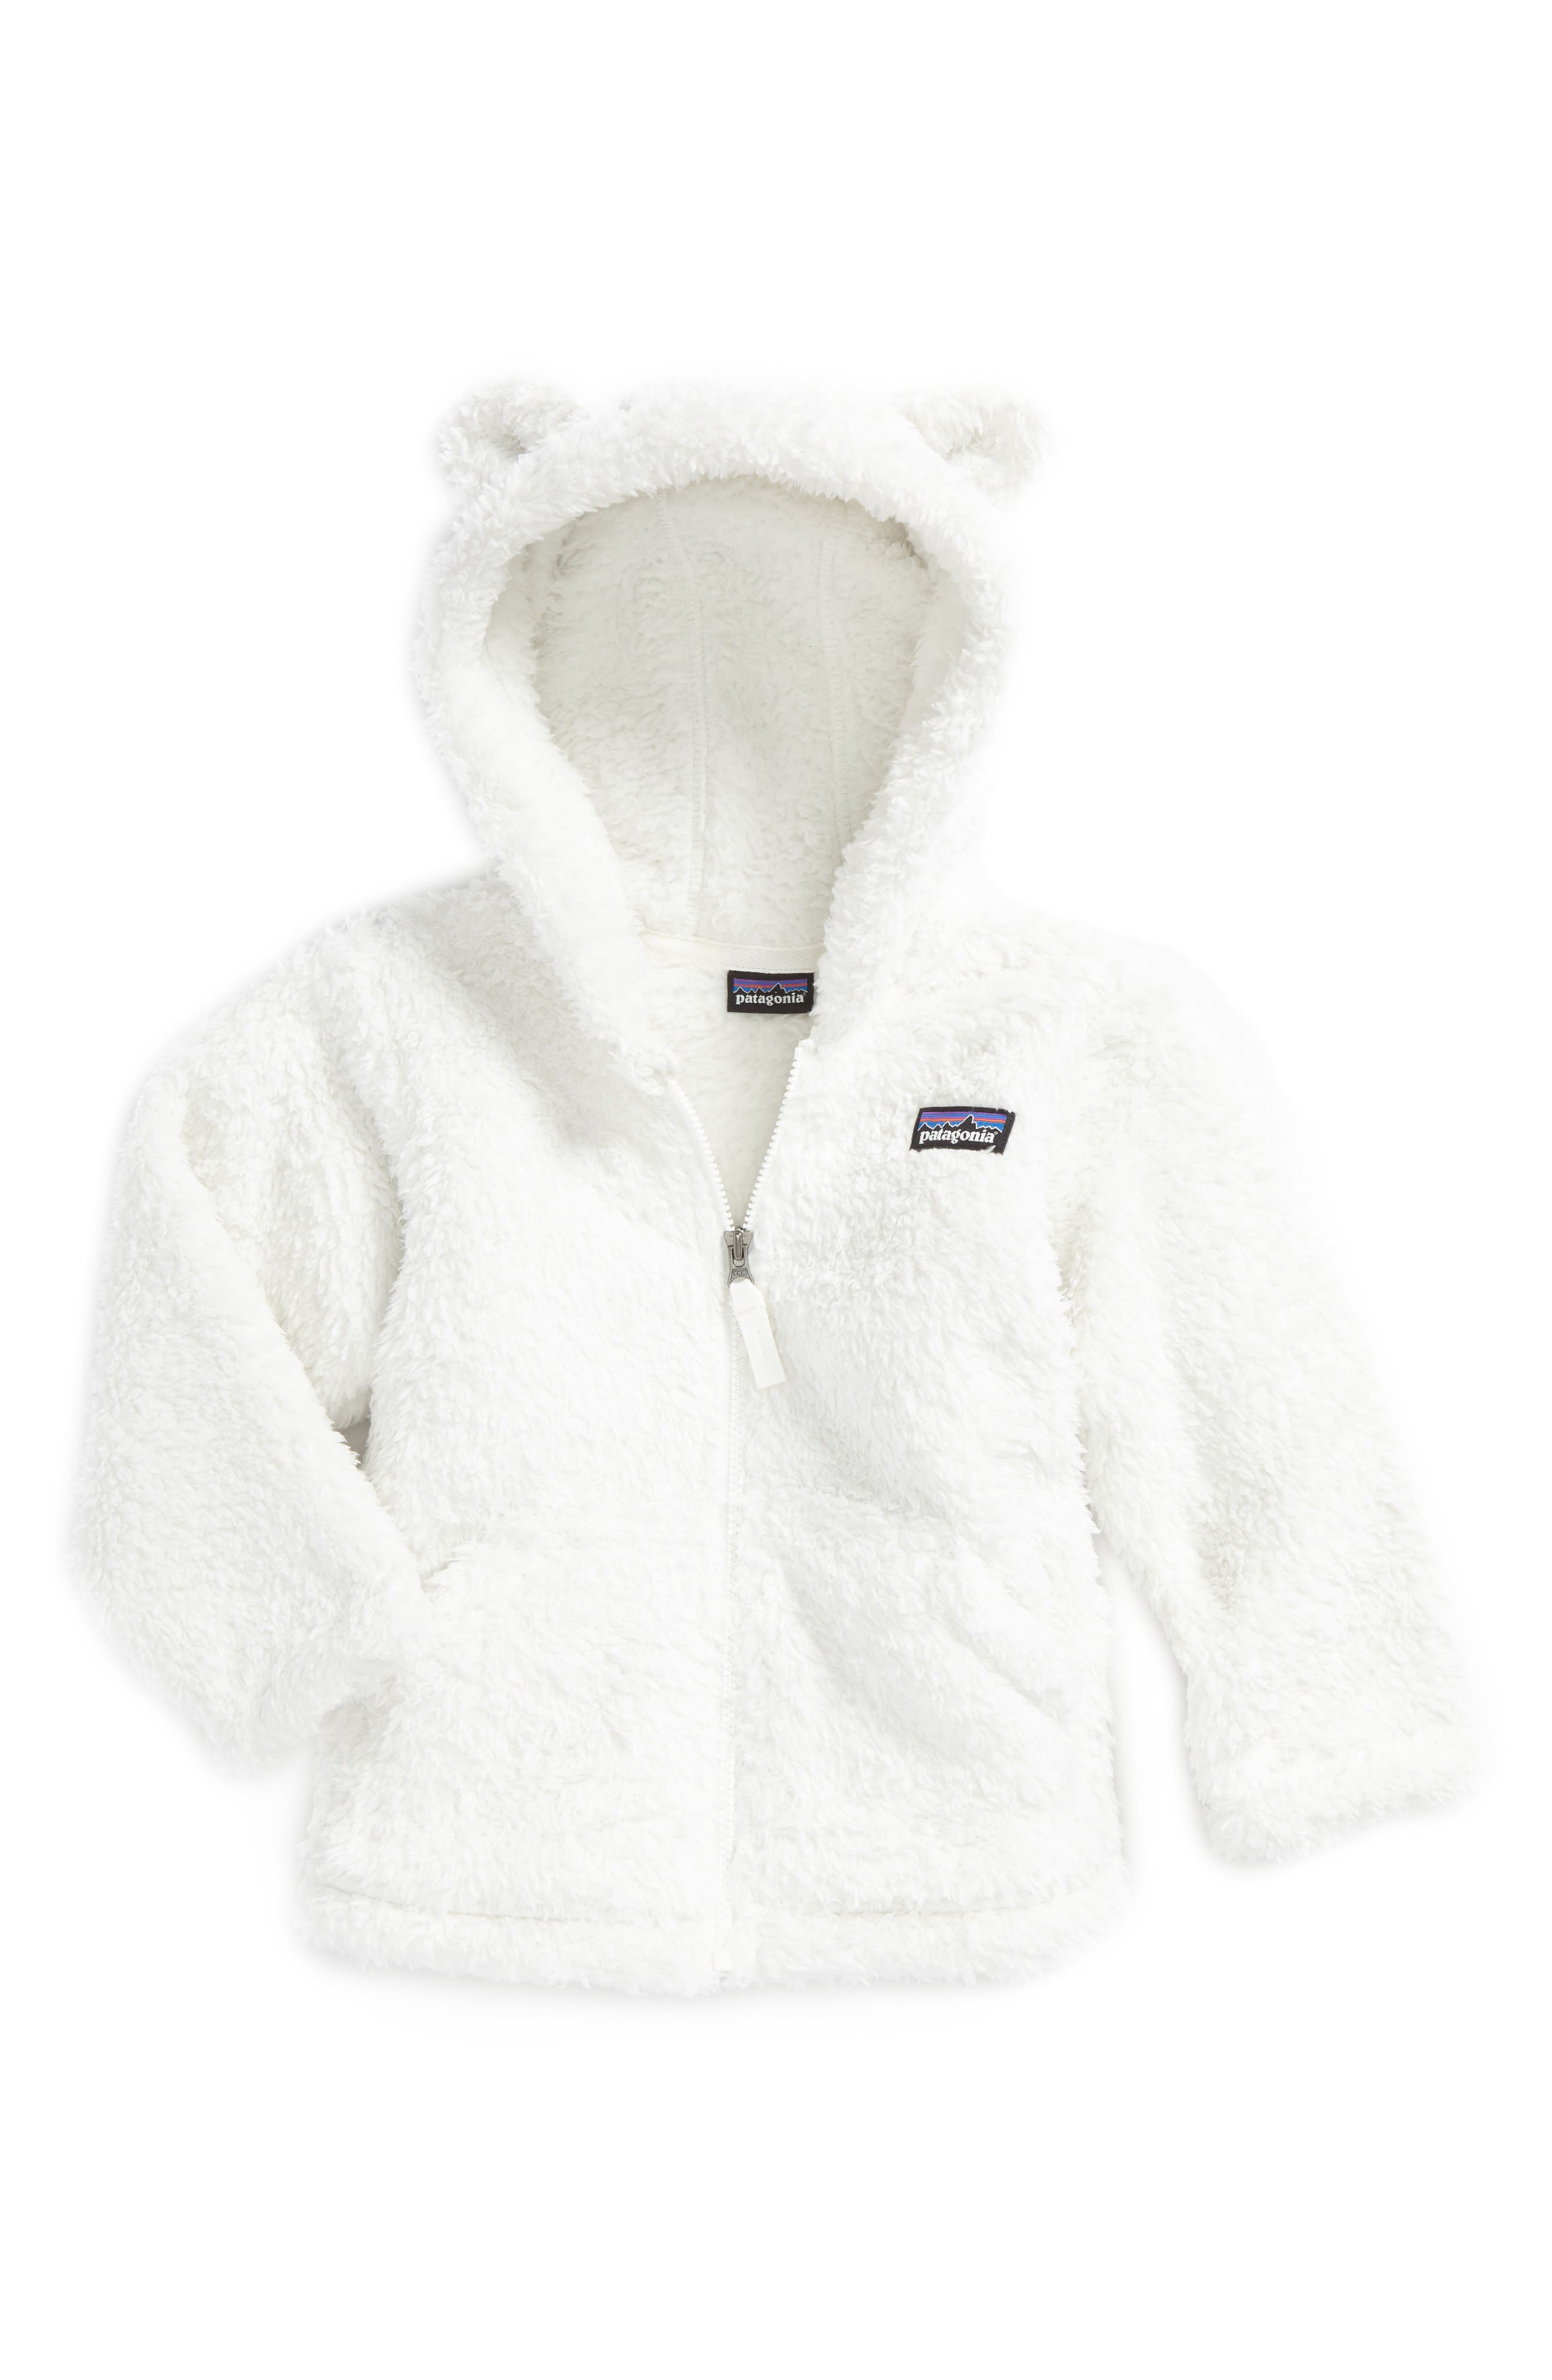 Toddler Girls Patagonia Furry Friends Fleece Hoodie Size 3T  White